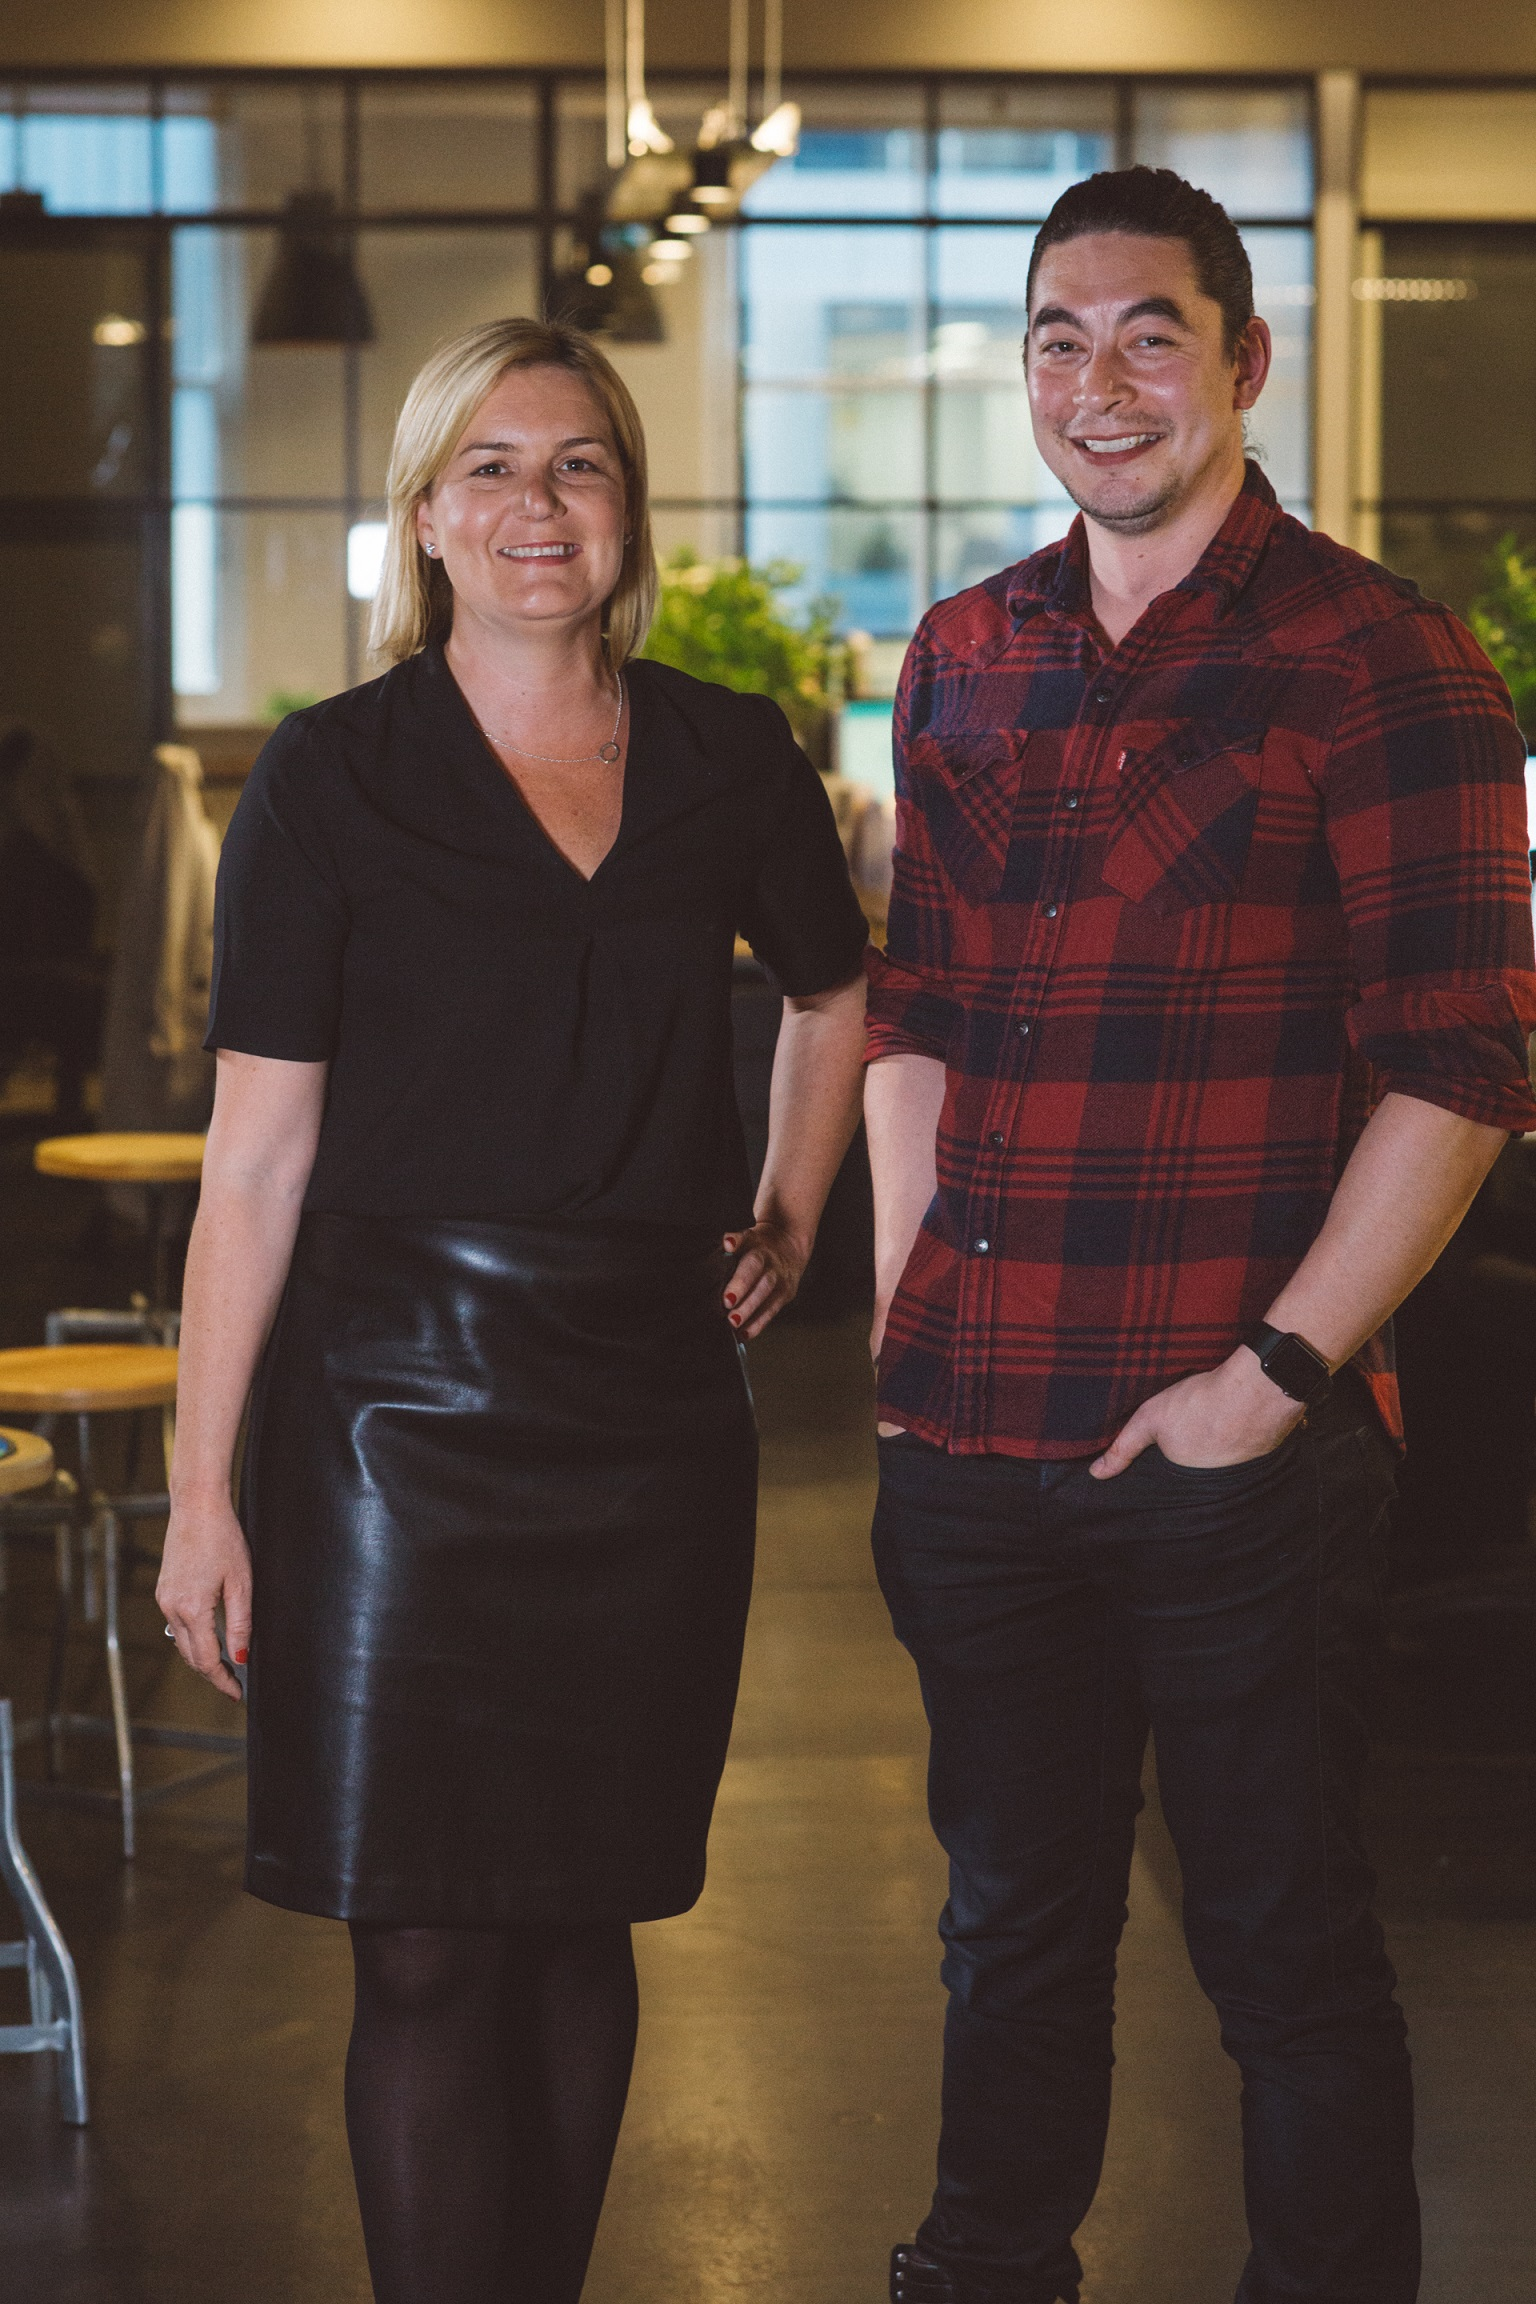 Eithne McSwiney, Managing Director. Ryan Chao, Digital Creative Director.